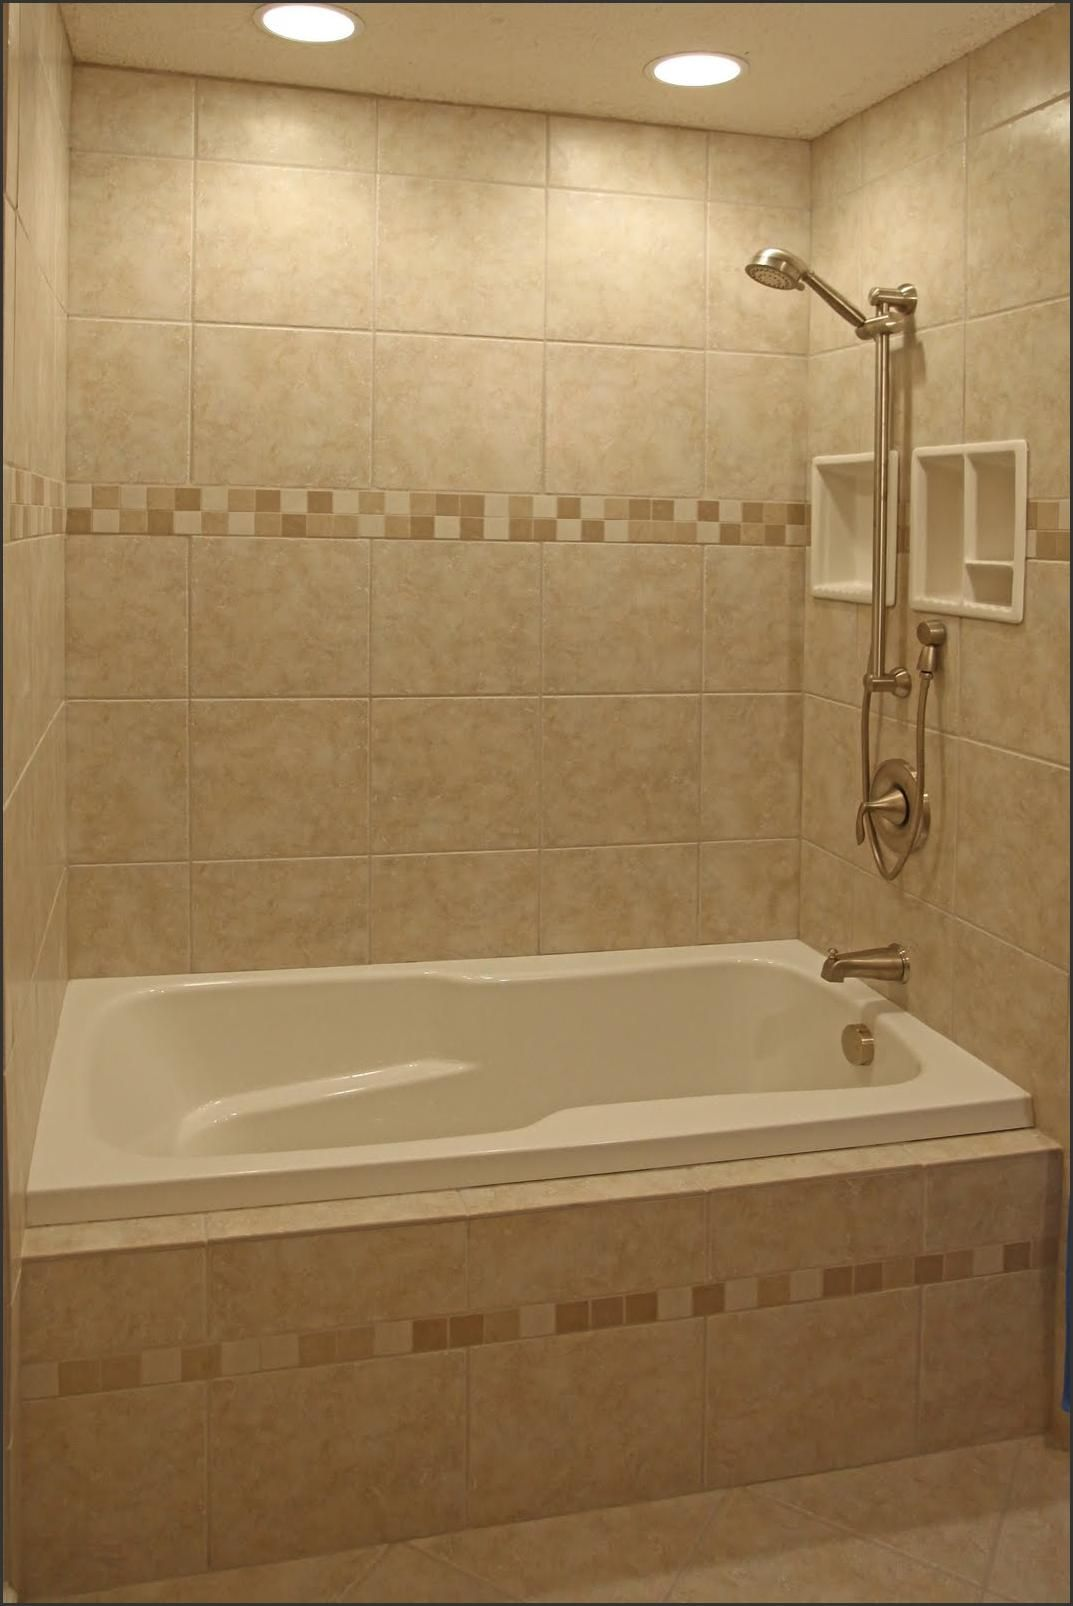 Charmant Bathroom Tiling